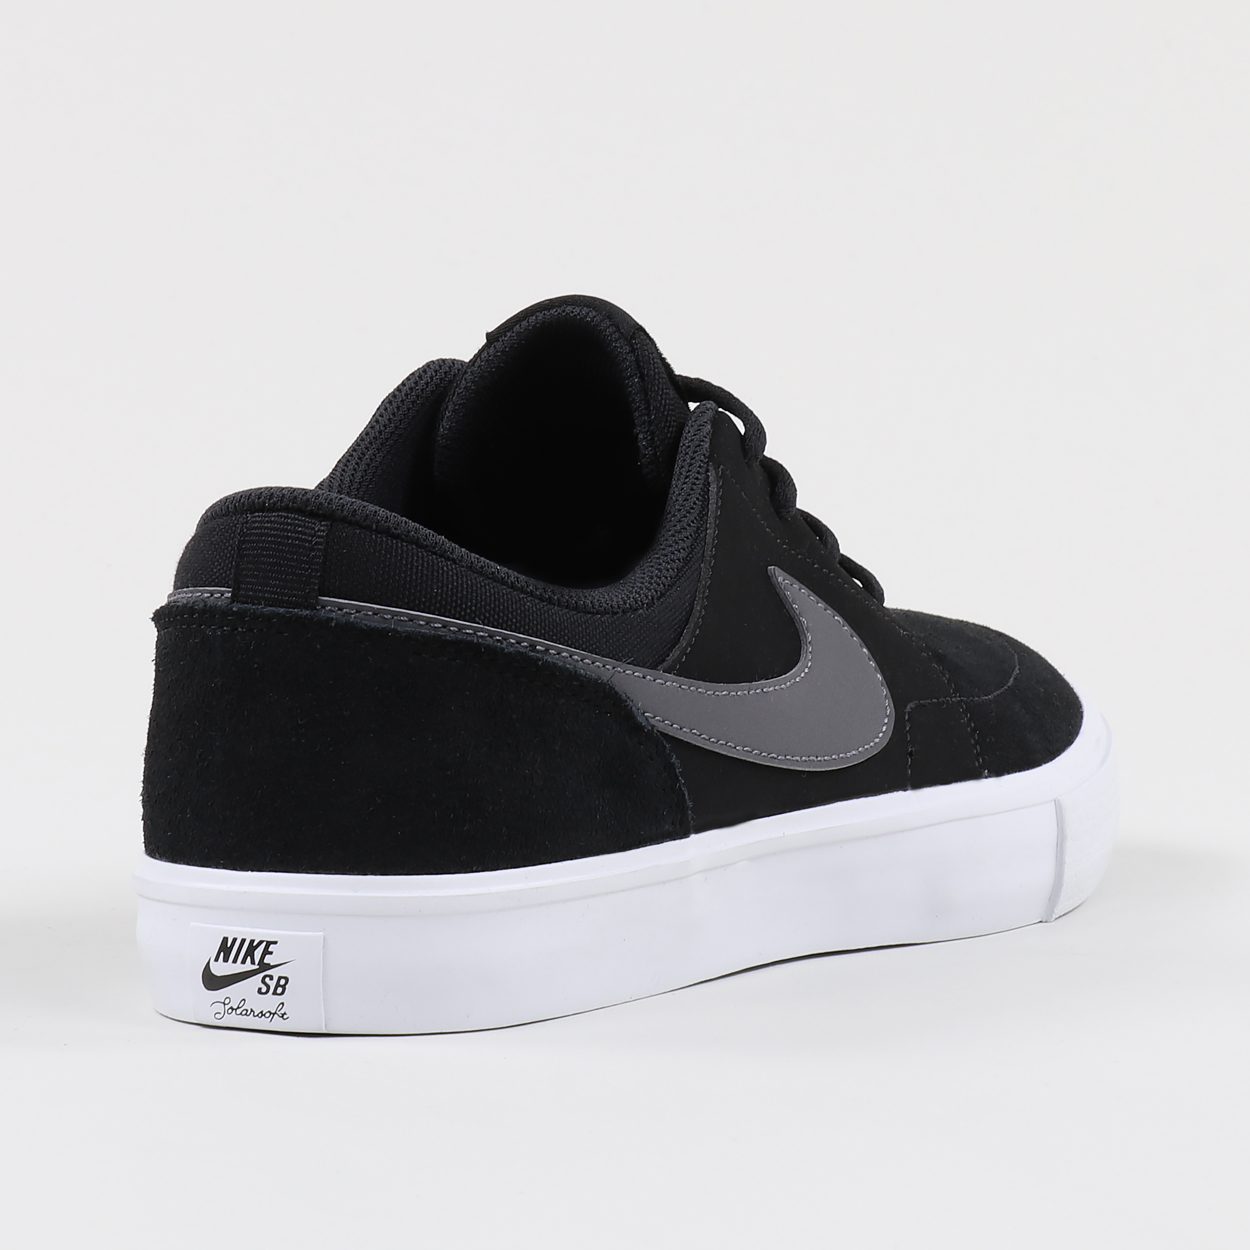 877d03821f A lightweight and flexible pair of trainers from Nike SB featuring a  Solarsoft insole for superior comfort and fit, placing you as low down as  posible to ...